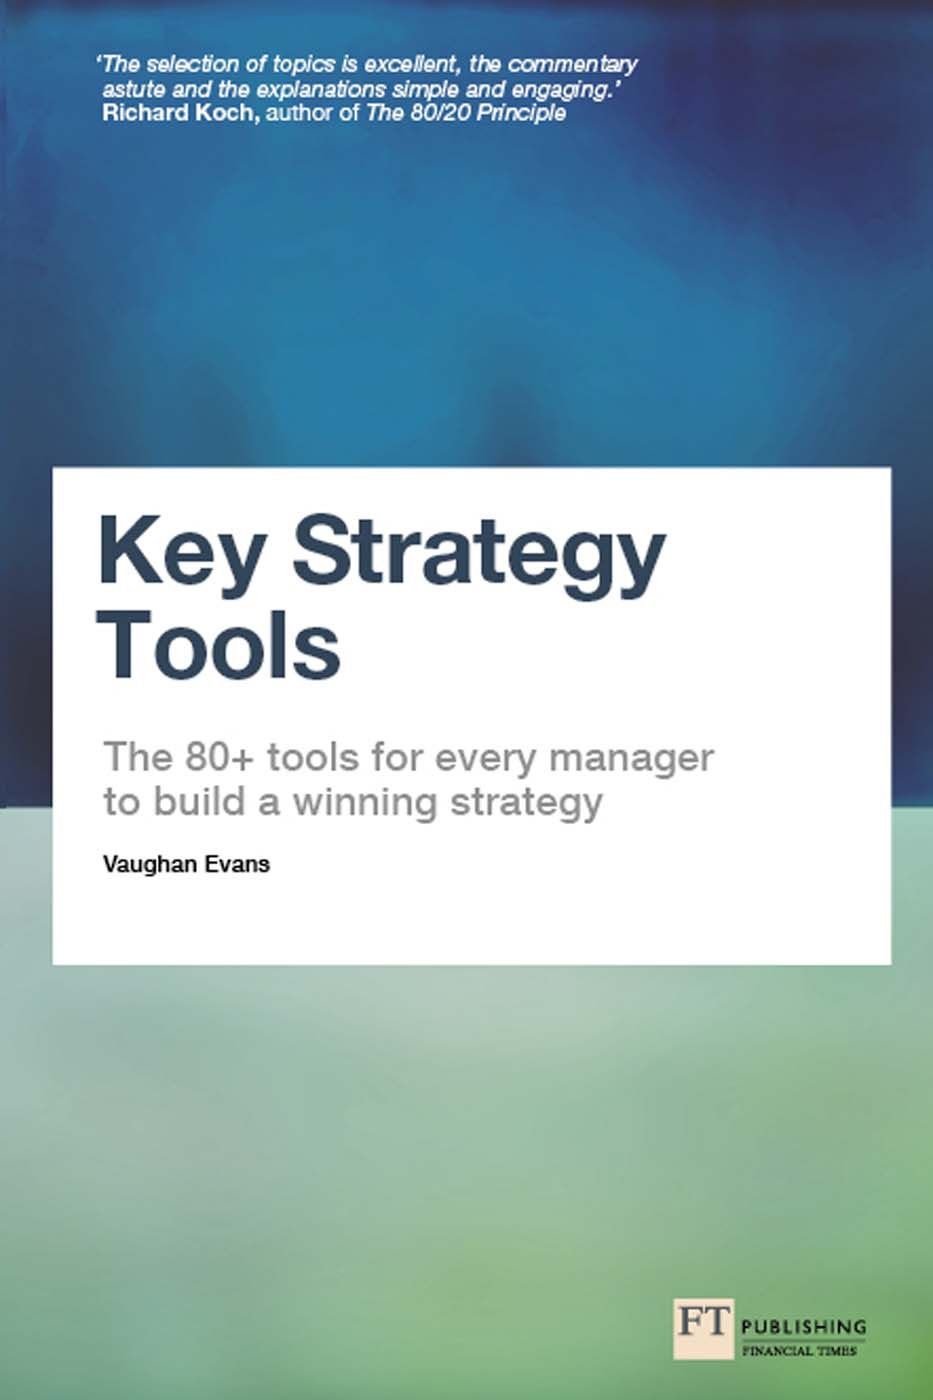 Key Strategy Tools The 80+ Tools for Every Manager to Build a Winning Strategy